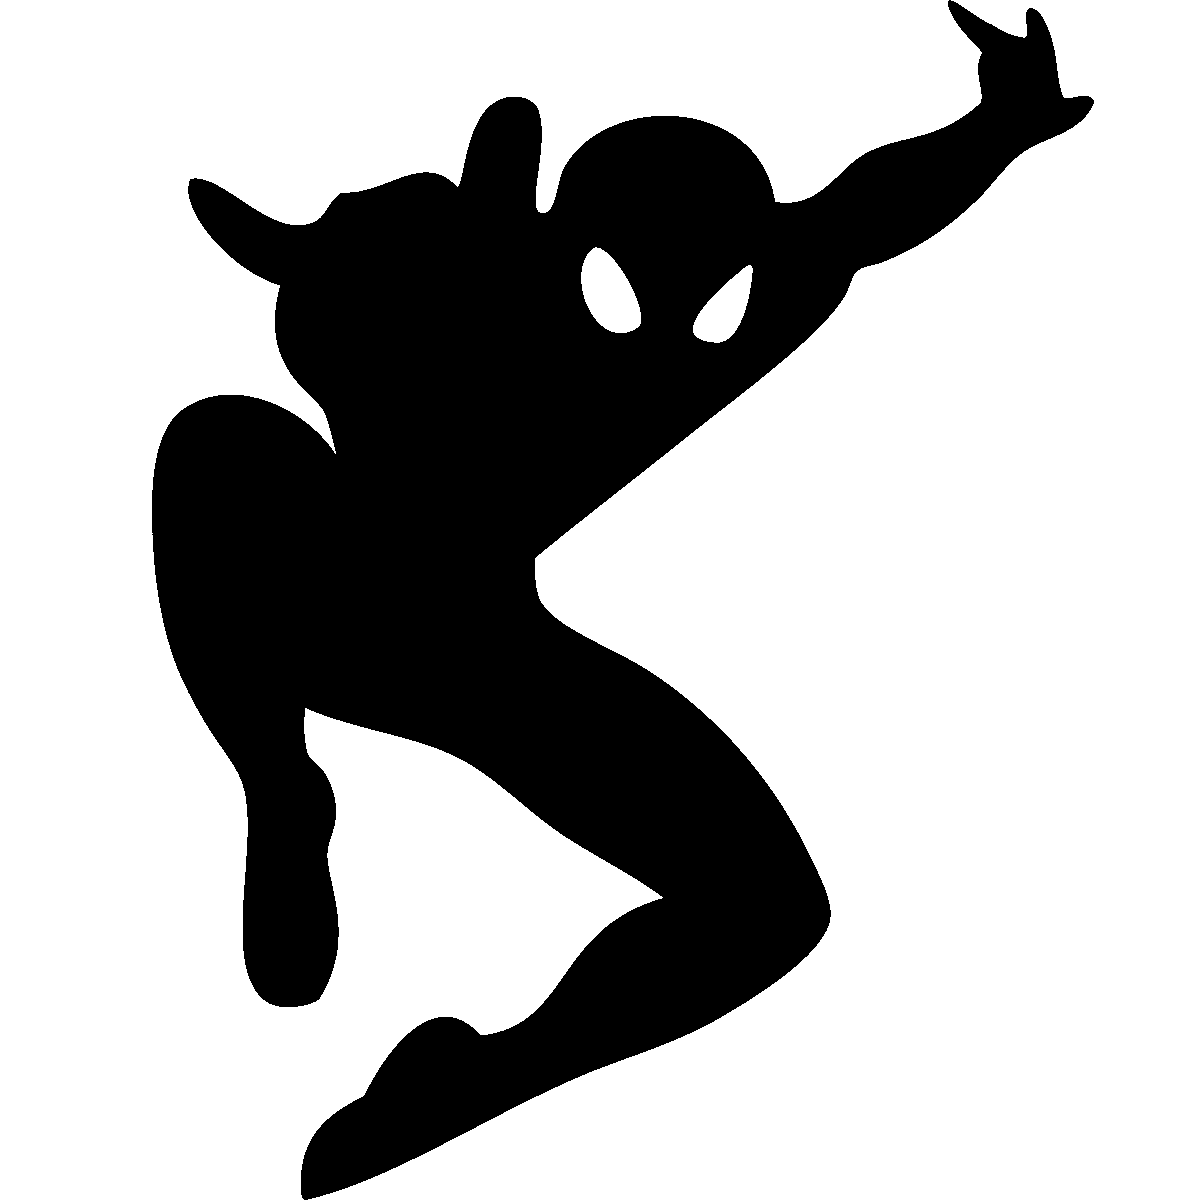 Svg silhouette spiderman. At getdrawings com free